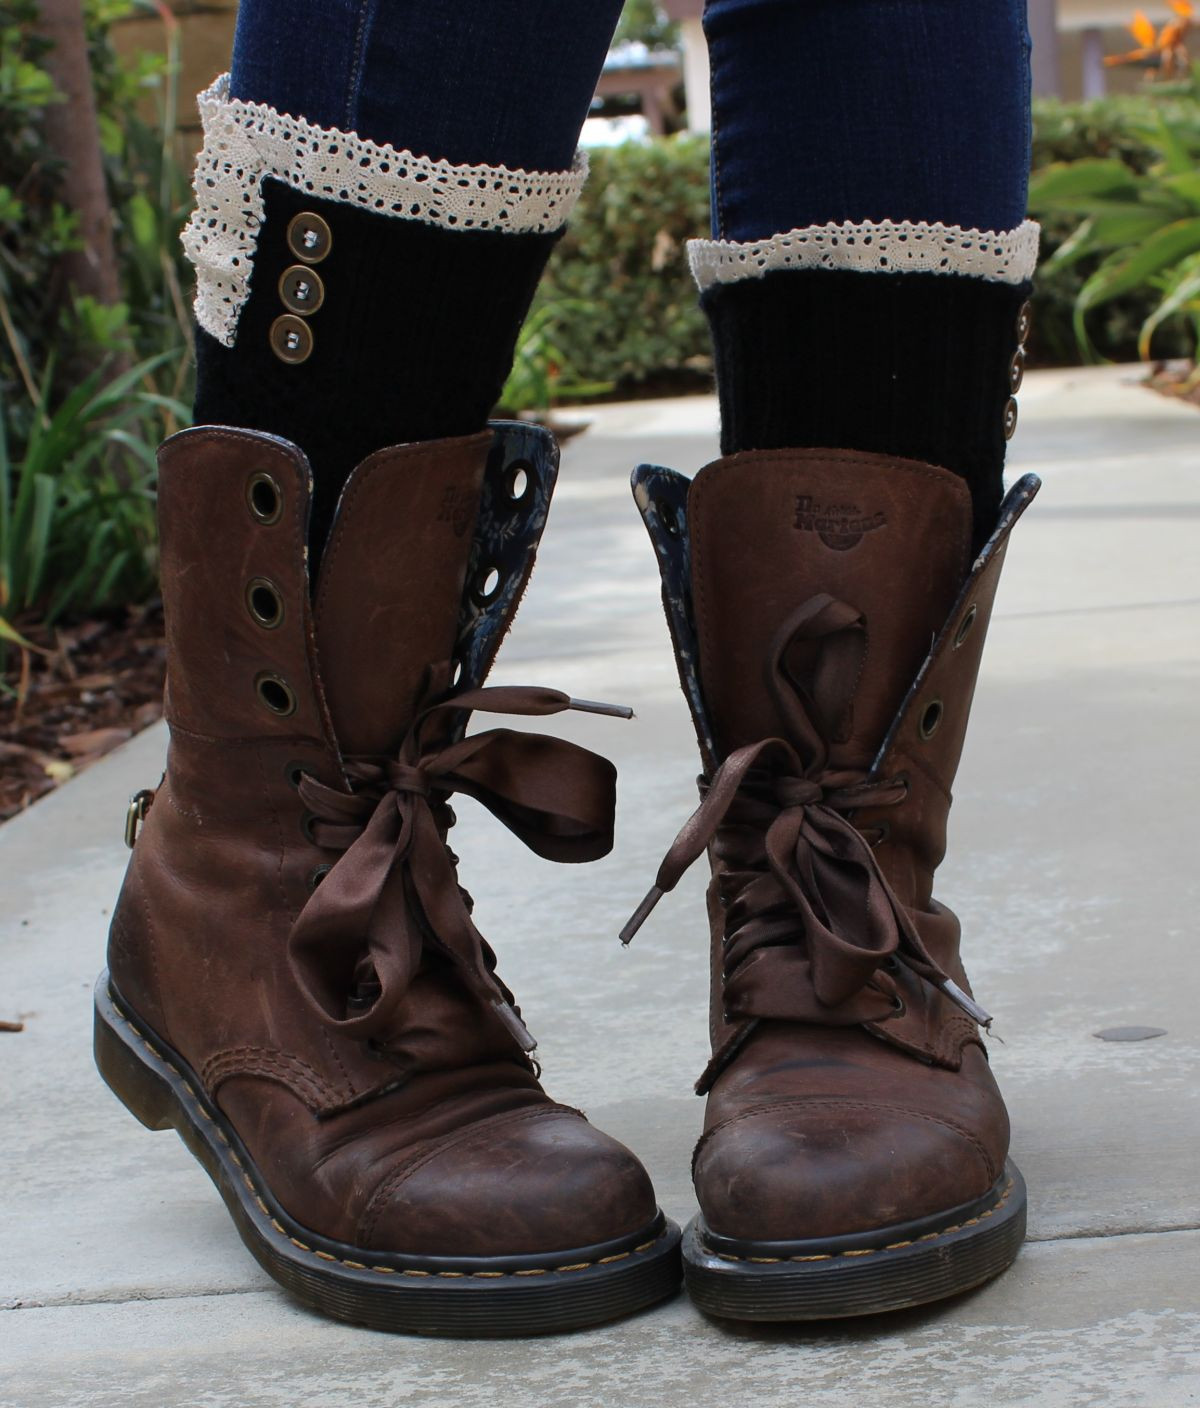 Unique Groopdealz Lace Boot Cuffs Of Awesome 50 Pictures Lace Boot Cuffs